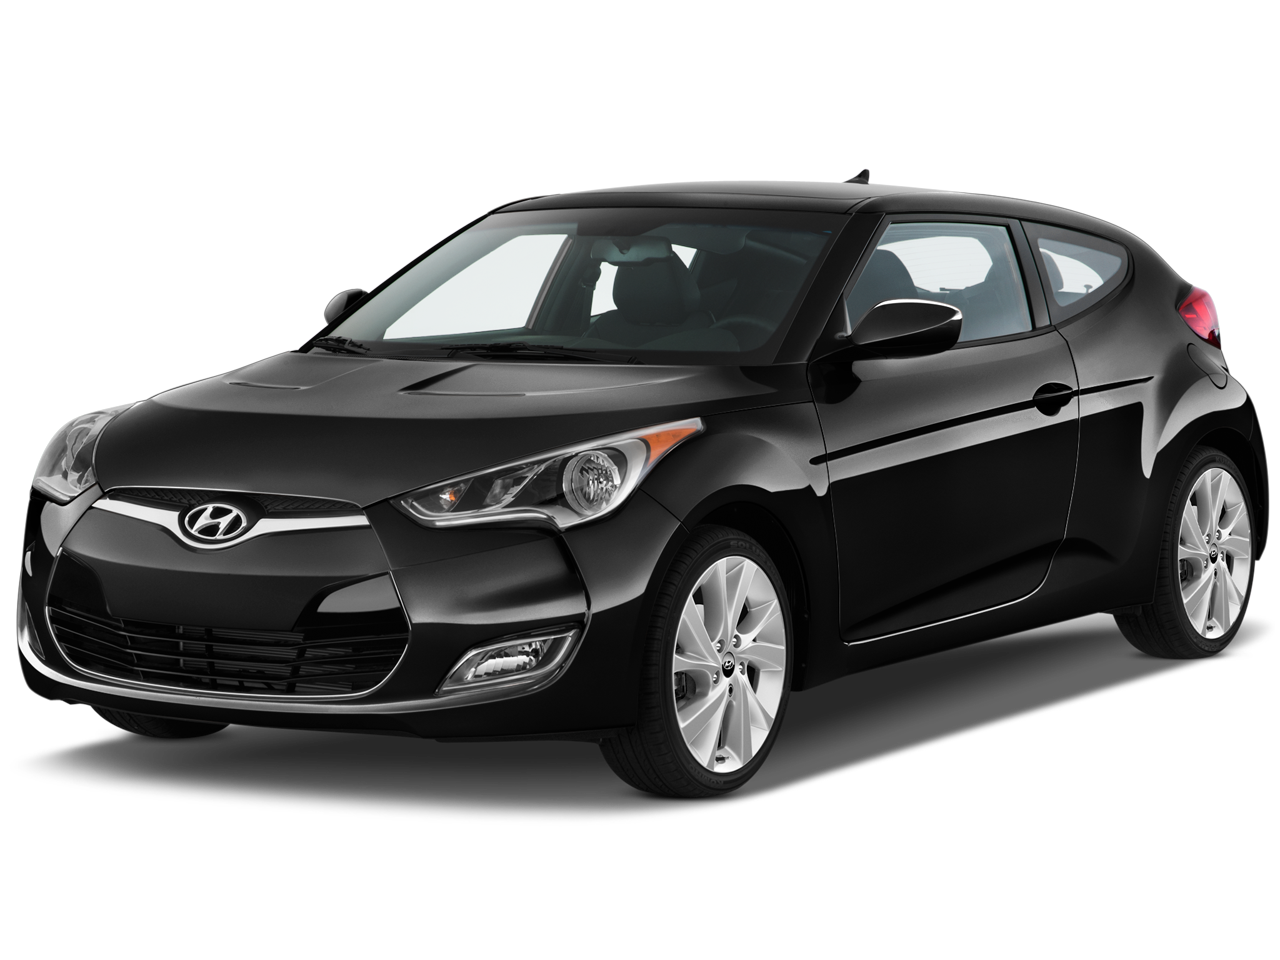 New Veloster for Sale in San Antonio, TX - World Car Group site